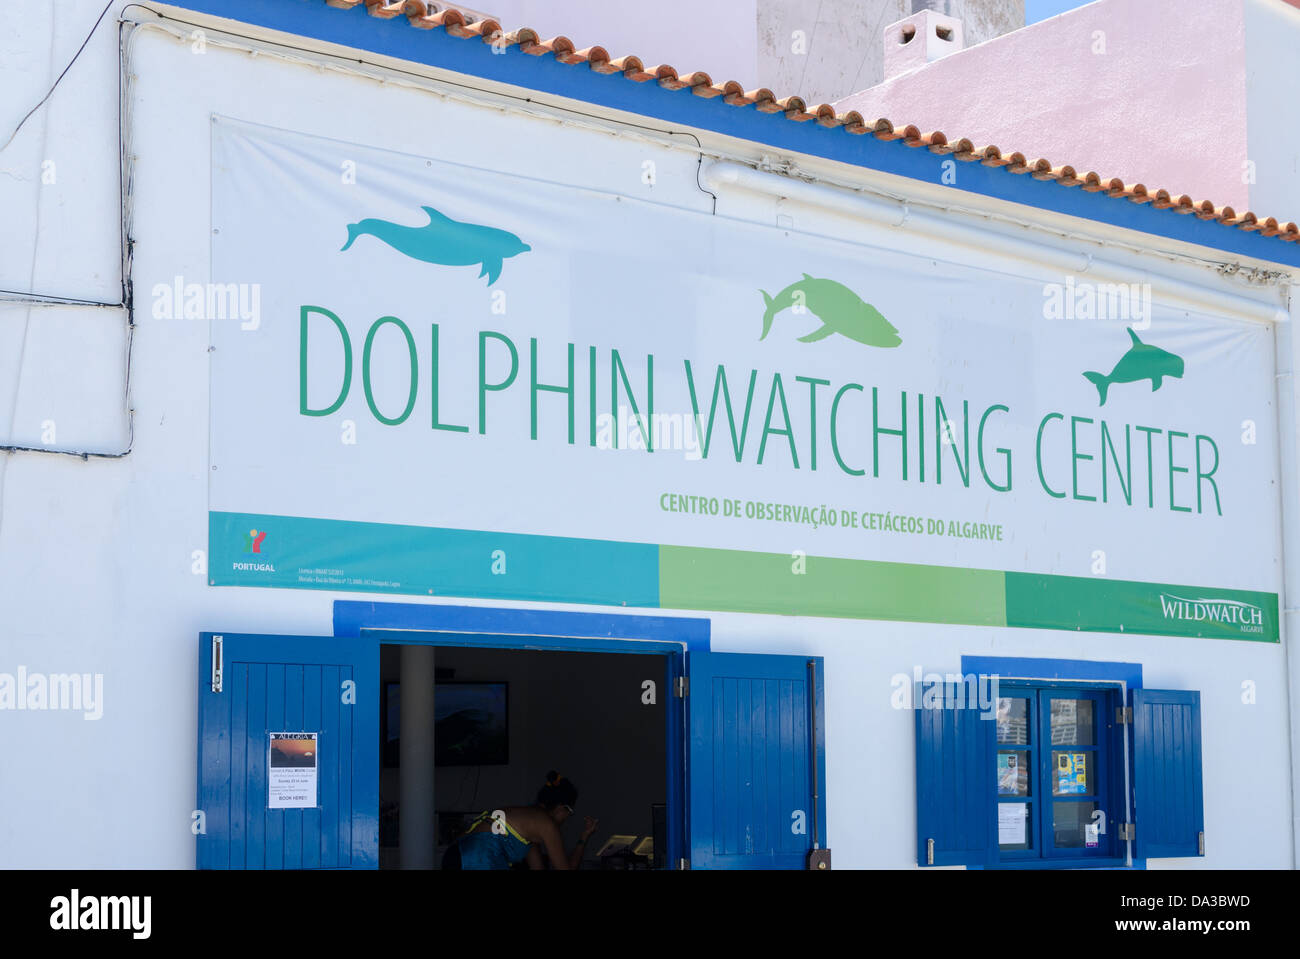 The Dolphin Watching Centre in the Portuguese fishing village of Ferragudo - Stock Image